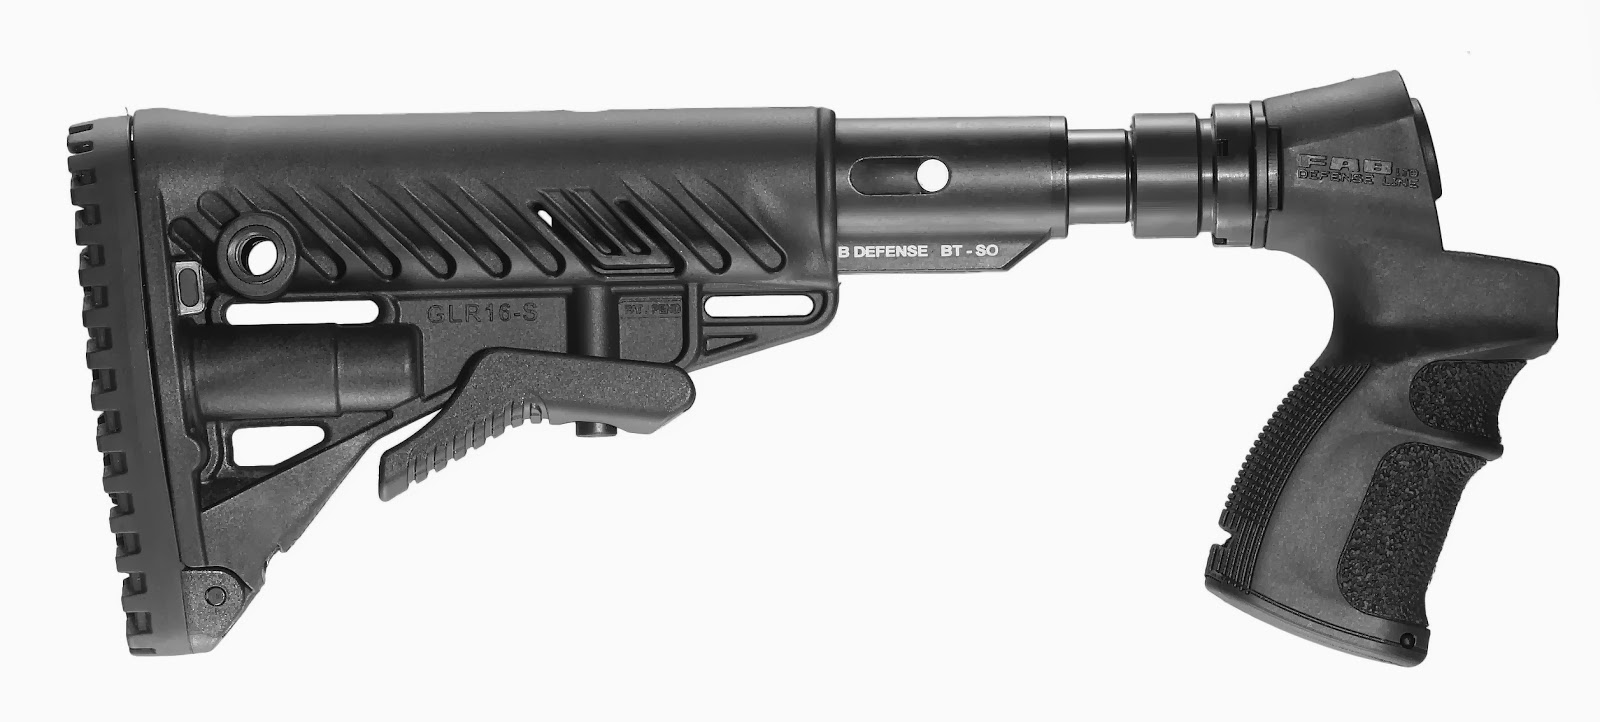 Stock options for mossberg 500 - Mossberg 500/590 Tactical Upgrades